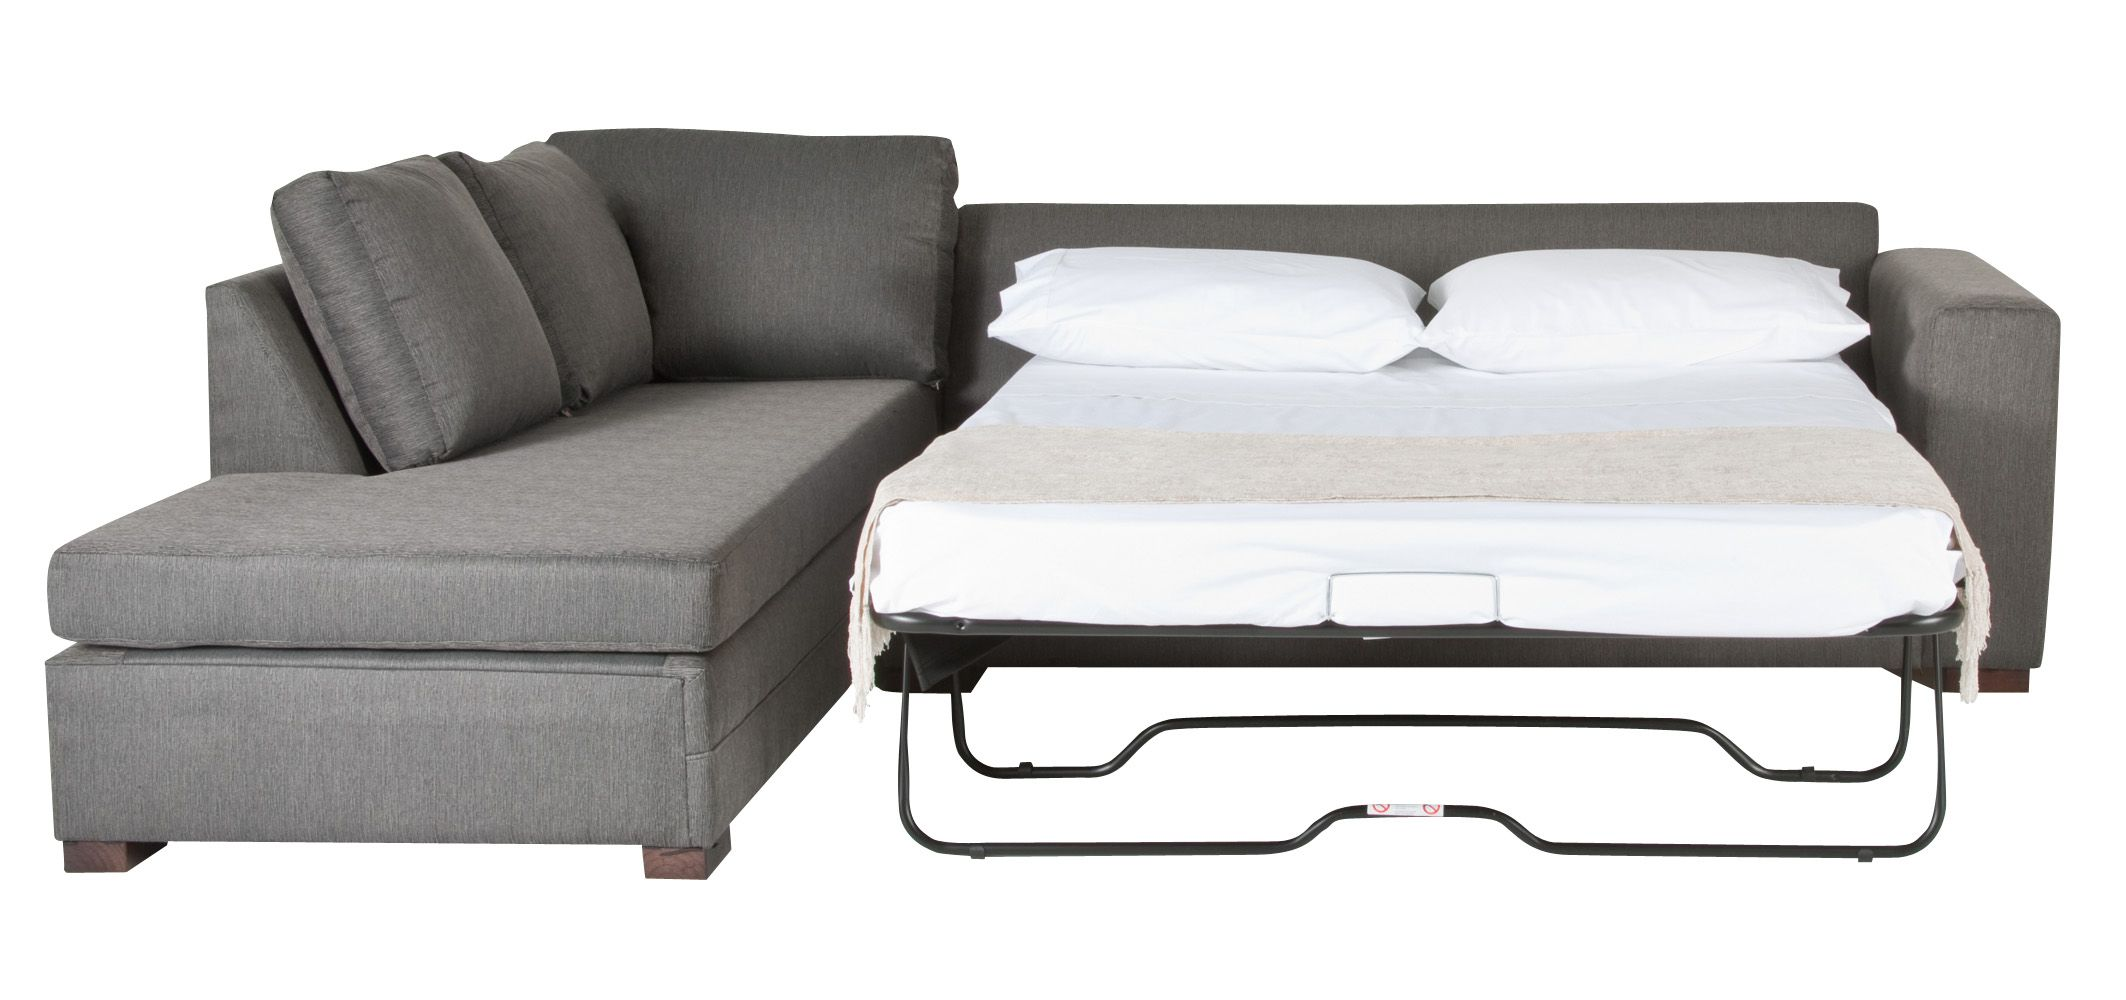 Image of: White Pull Out Sofa Bed Single Futons And Bedroom Sets